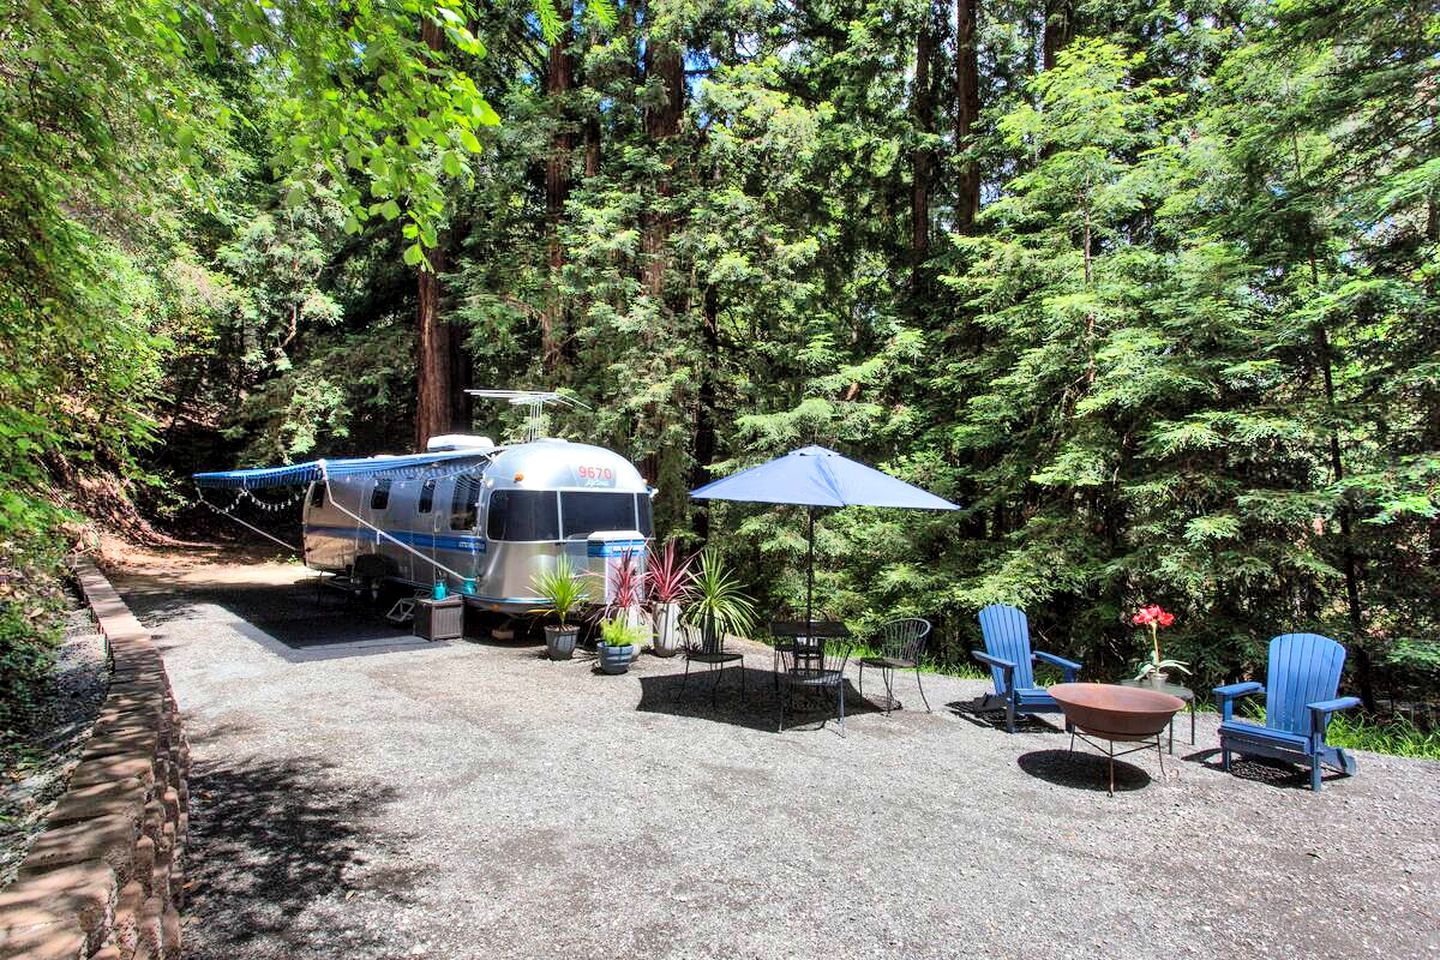 Airstreams (Scotts Valley, California, United States)